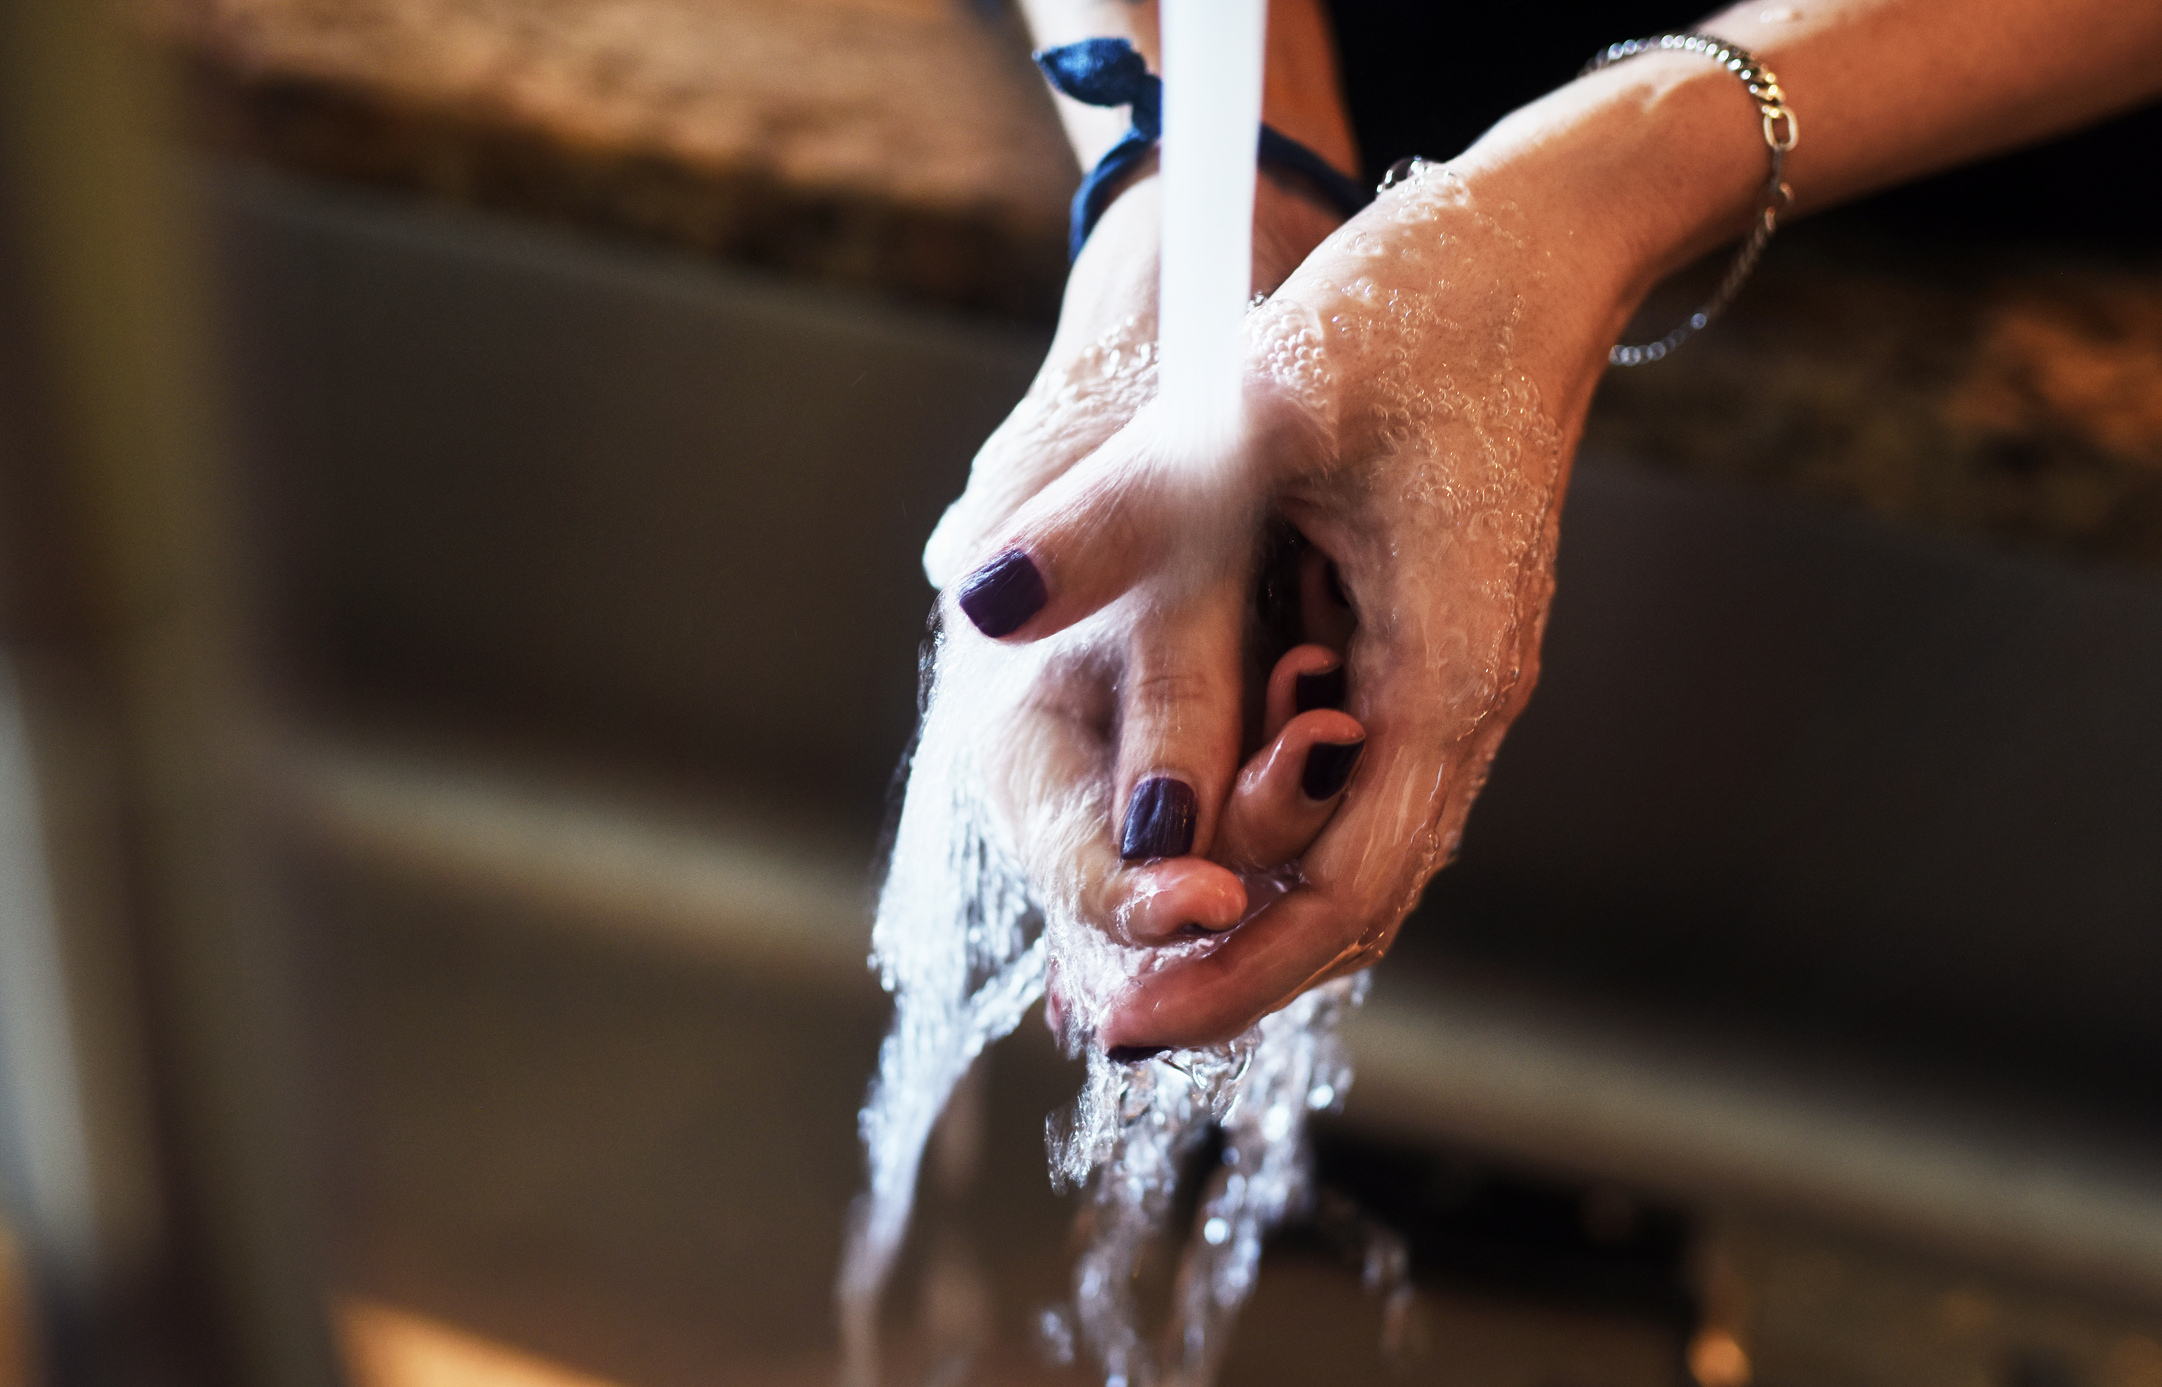 Closeup of an unrecognizable woman washing her hands under a tap at home during the day